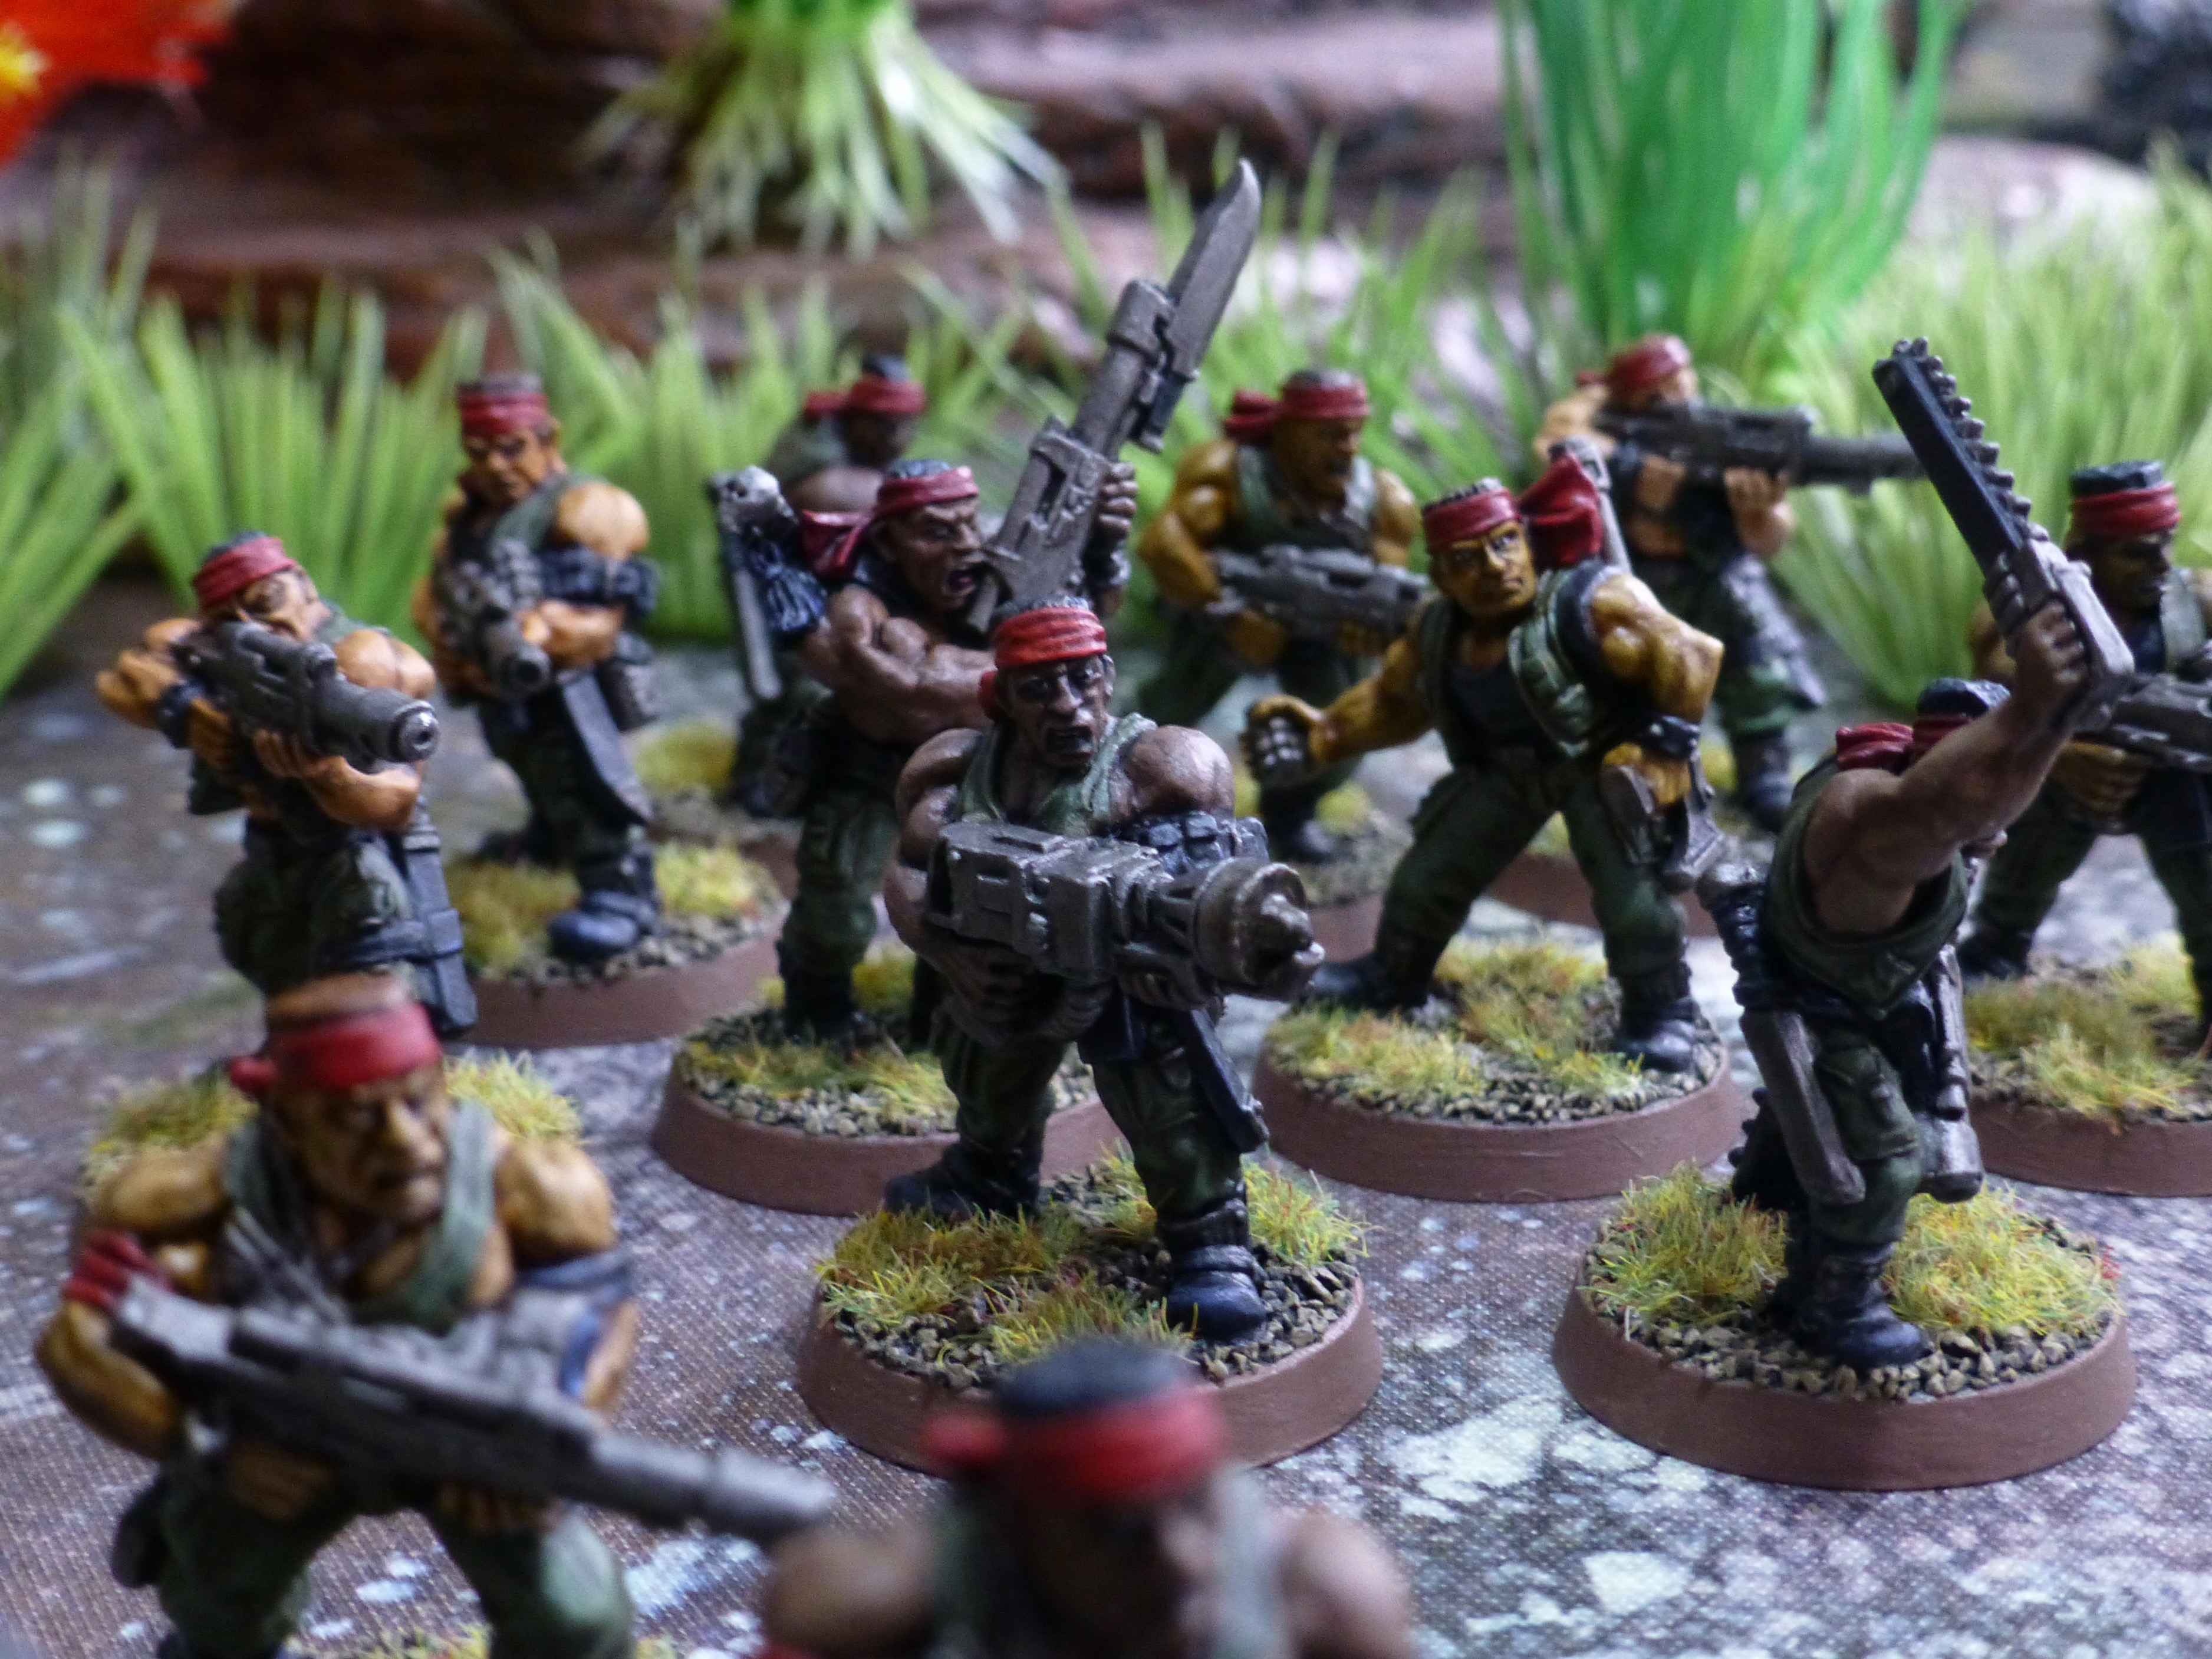 a2a89832e8f Squad of soldiers in action. Catachans make ferocious fighters